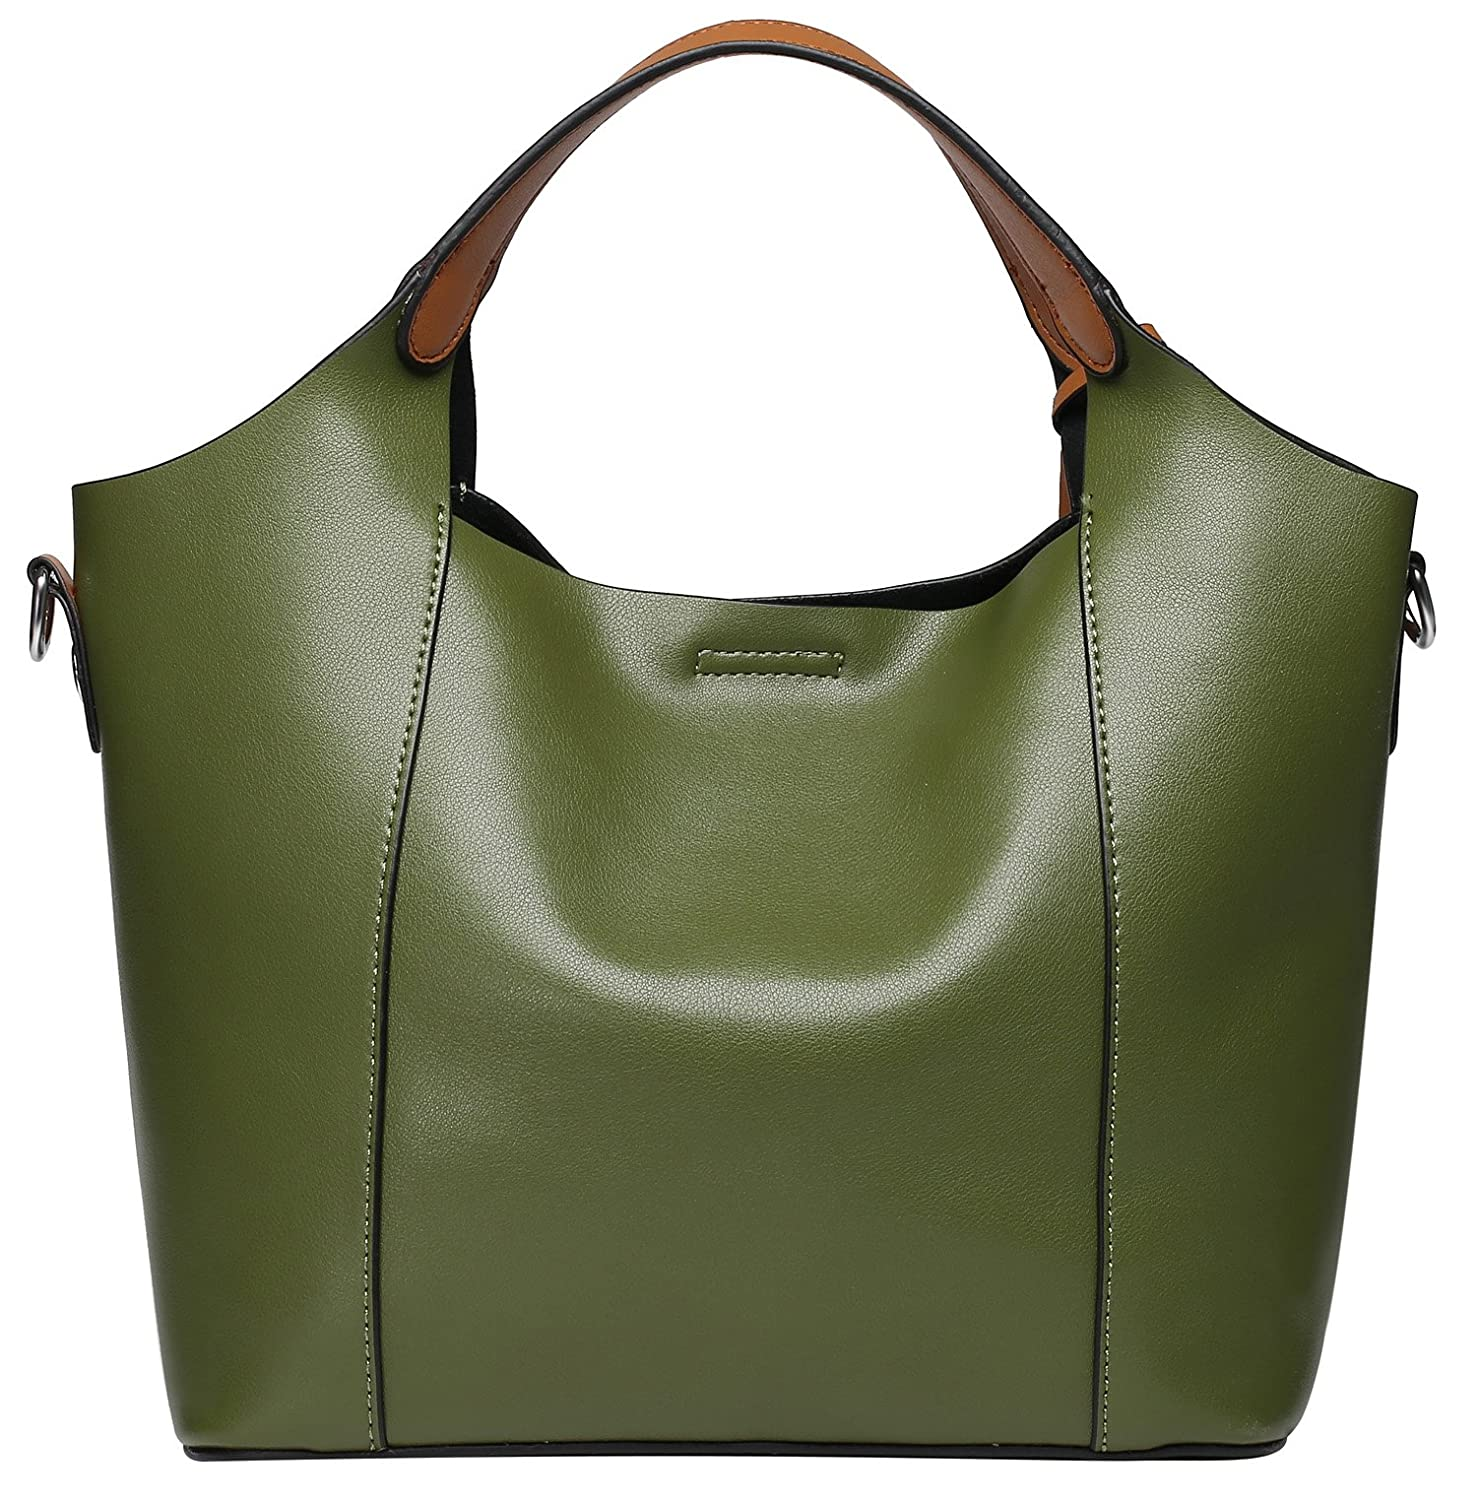 9e12fa08d4 Amazon.com  Weidu Women Leather Handbags Shoulder Bags Top-Handle Tote  Ladies Bags On Sale Clearance Leather Sling Bags For Women Purses For Girls  (green)  ...